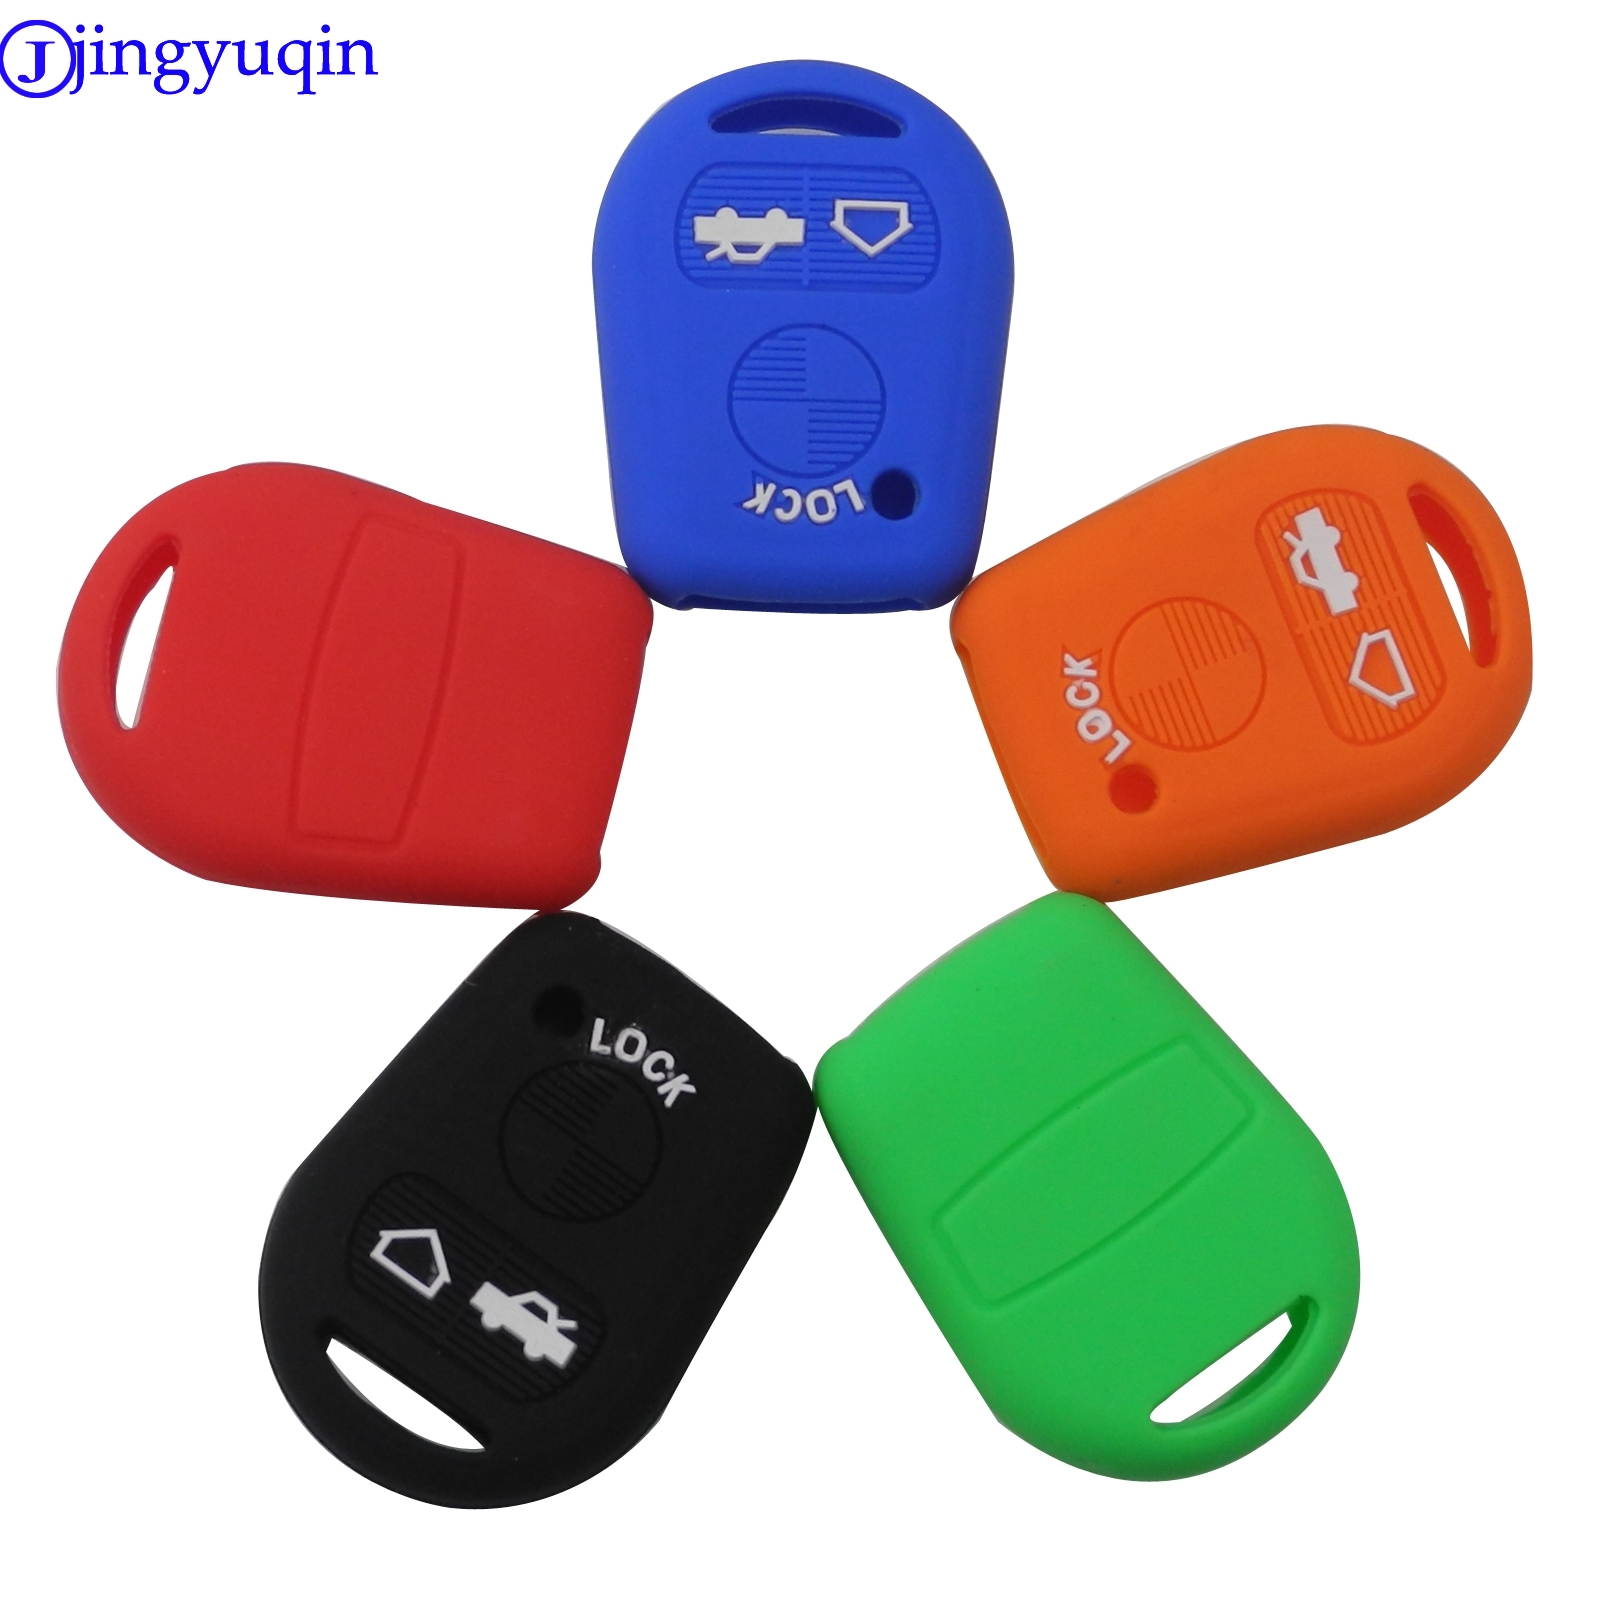 Jingyuqin 3 Buttons Silicone Remote Car Key Cover Case Fob For BMW E31 E32 E34 E36 E38 E39 E46 Z3 Z4